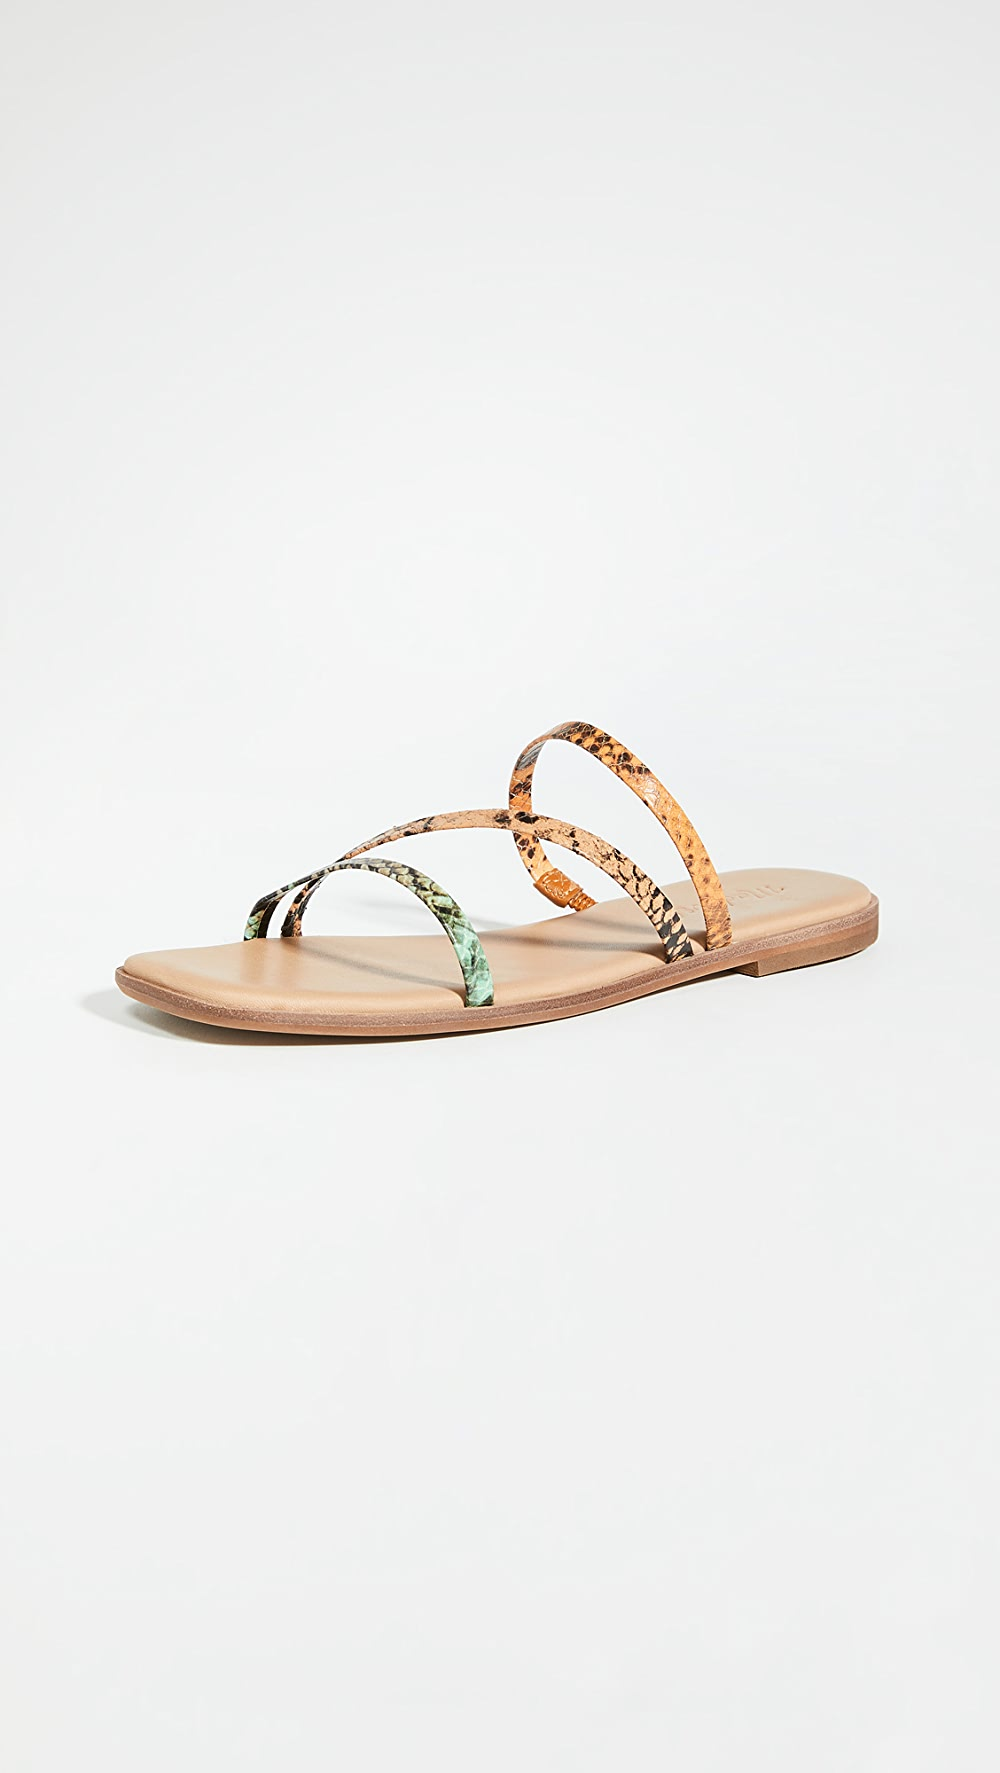 Buy Cheap Madewell - Leslie Bare Square Toe Sandals Goods Of Every Description Are Available